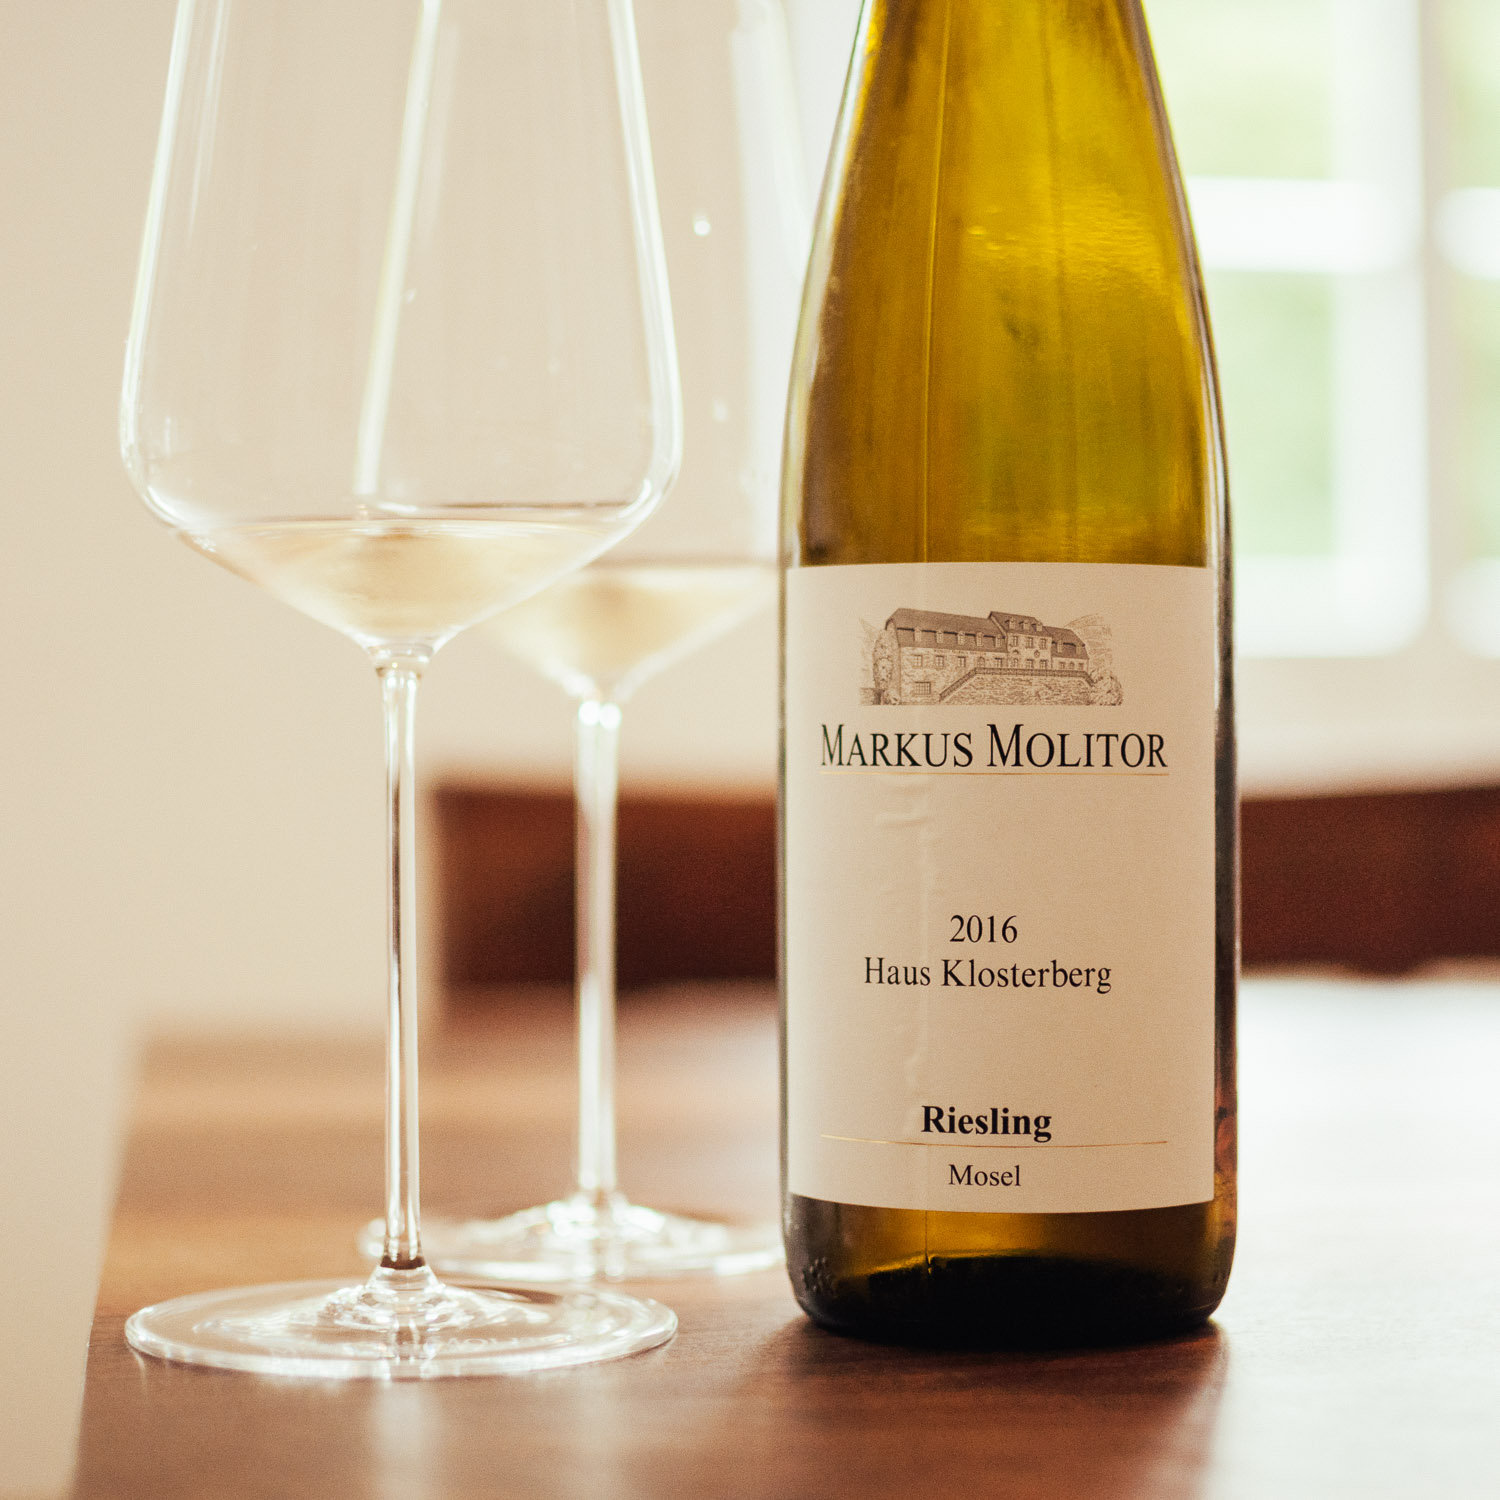 Haus Klosterberg 2016:  One of the best dry Riesling under 10 Euros! Fresh, citrus, green apples, crisp acidity, nice spices, mouthwatering with a lemon peel, citrus finish.